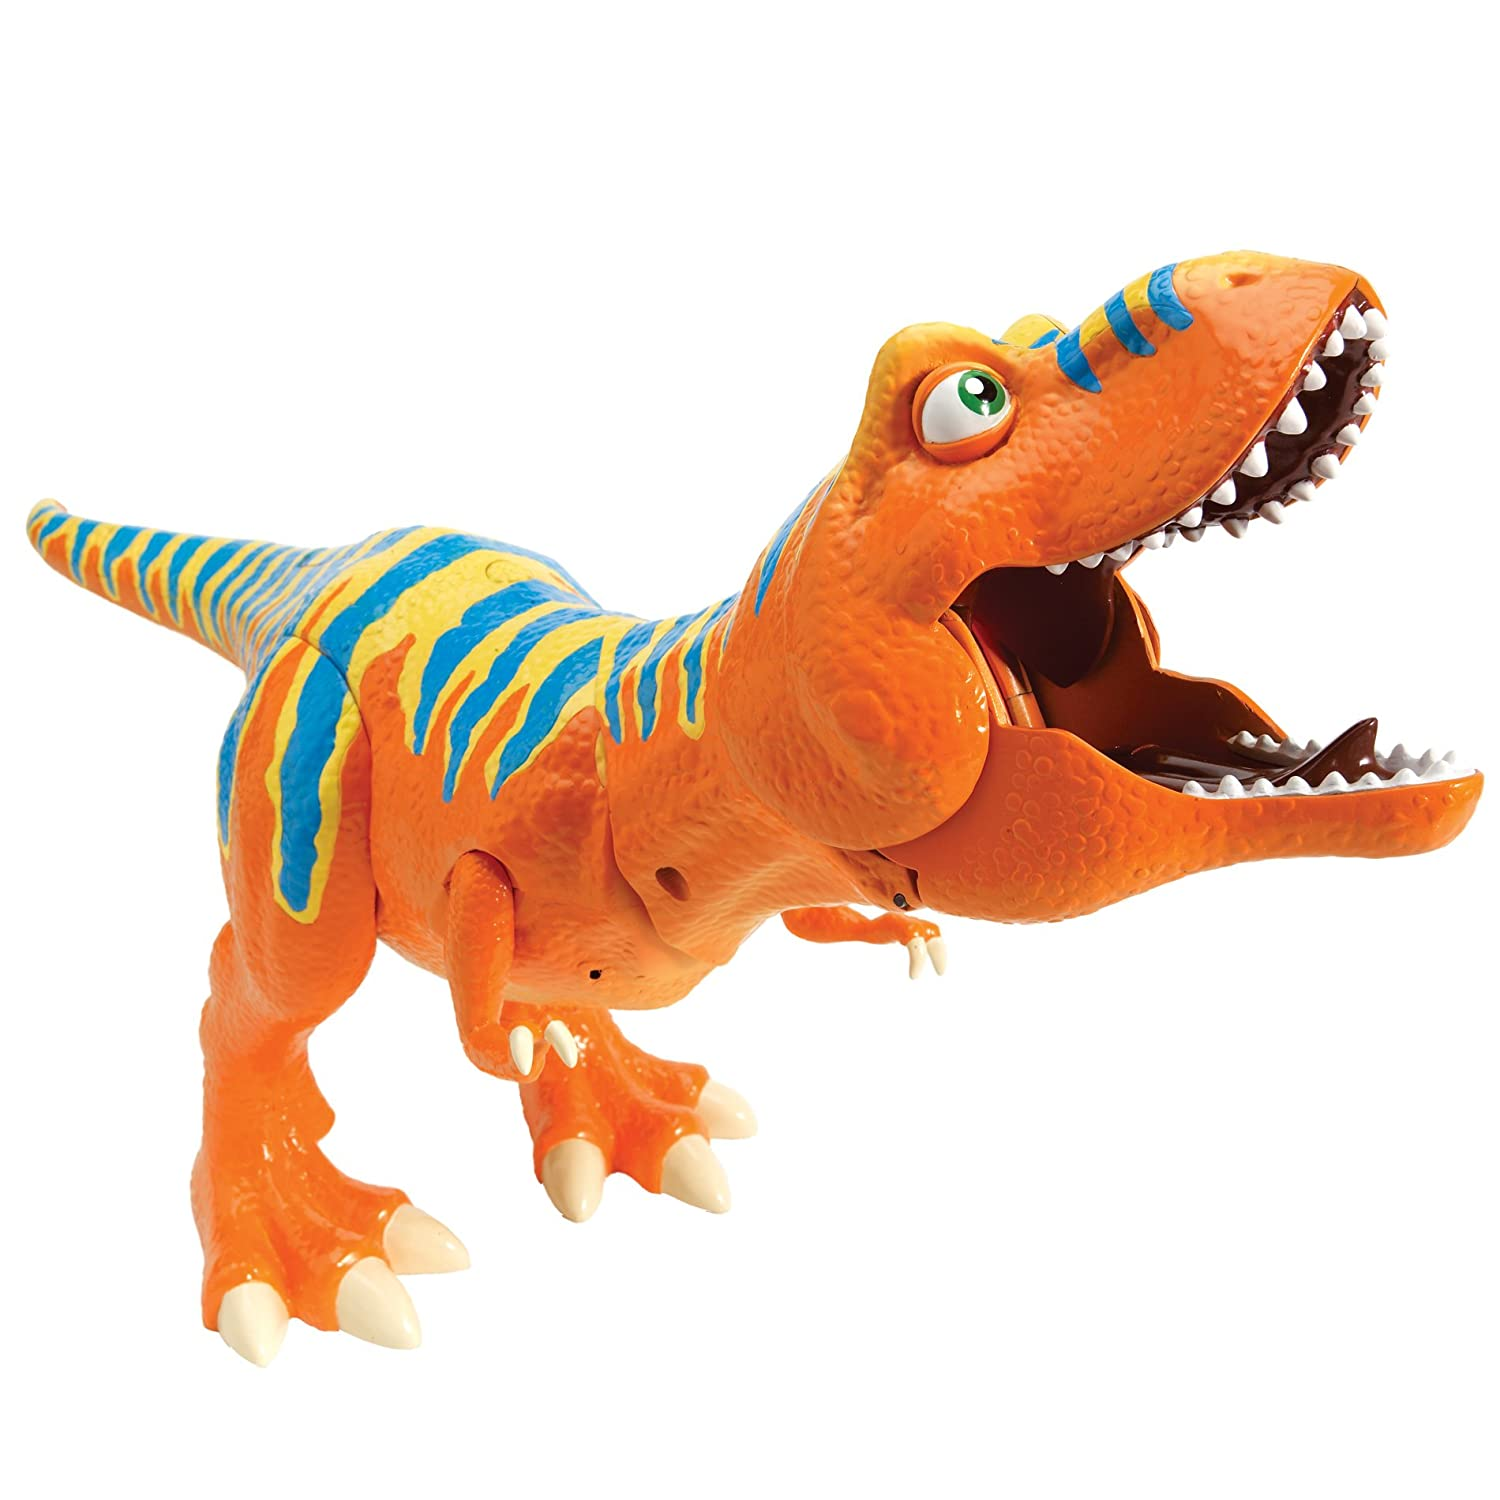 About Dinosaur Toy Blog